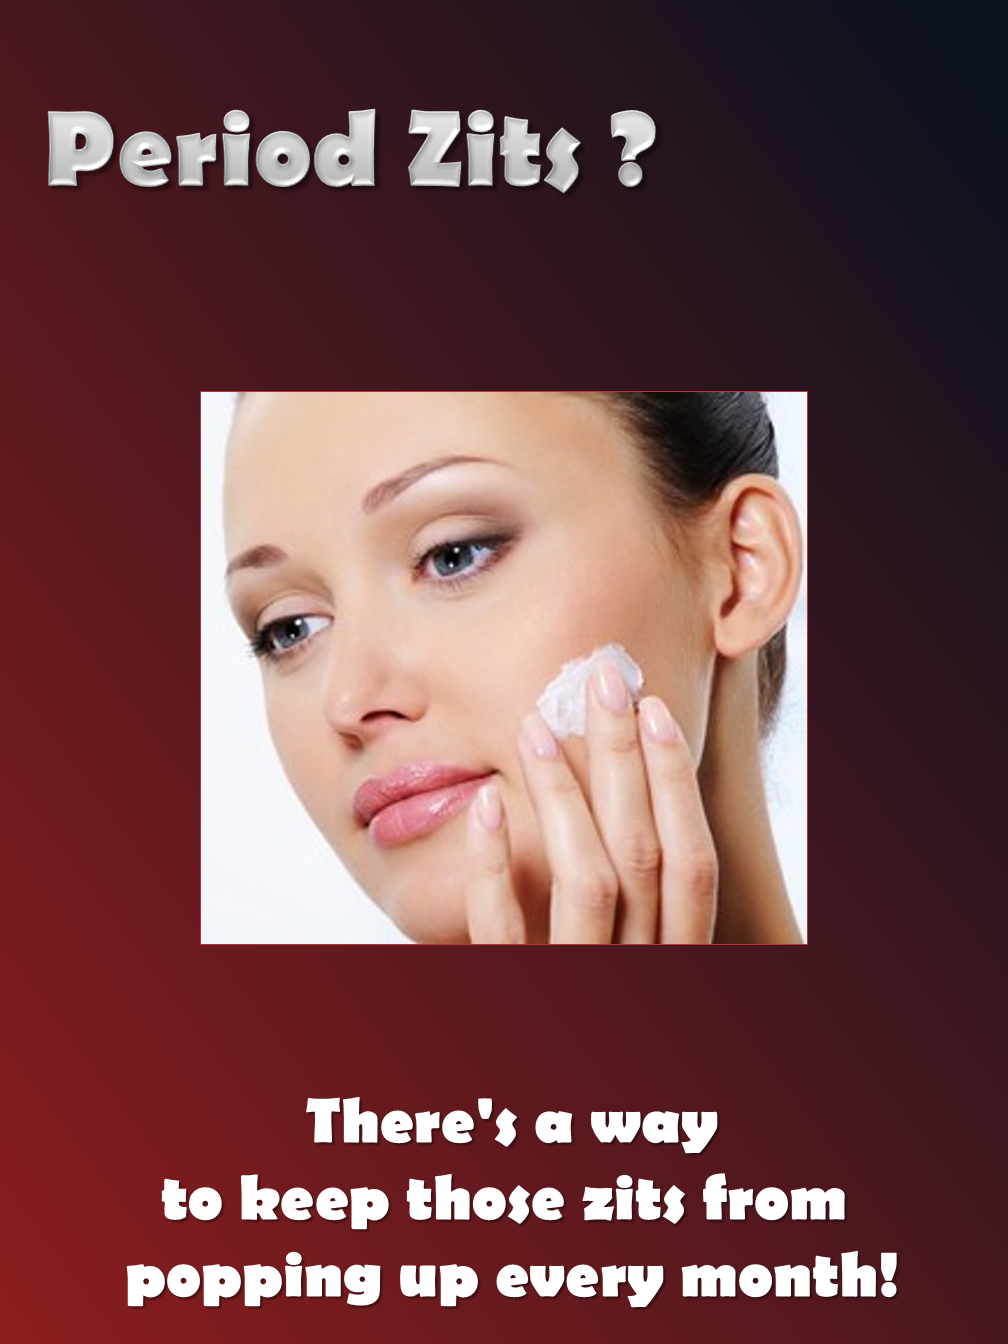 Period Zits - Get rid of them